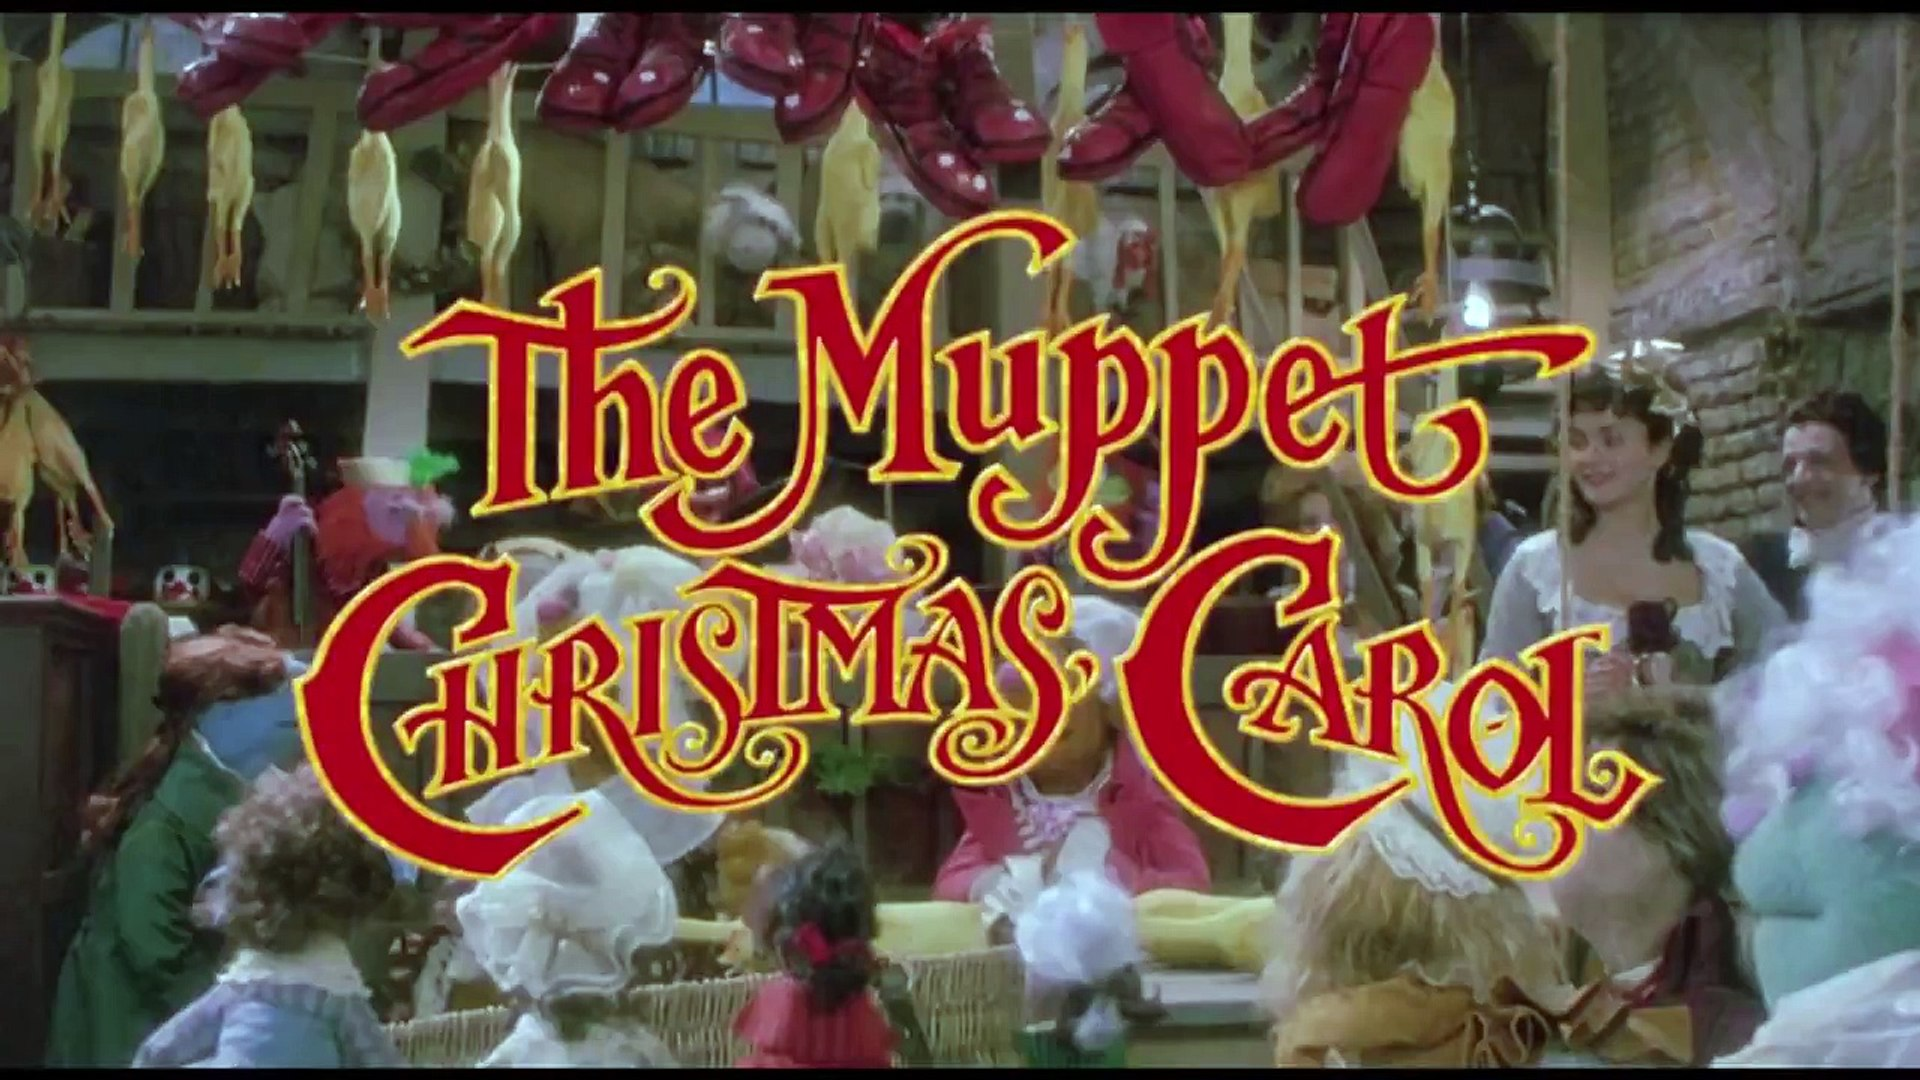 The Muppet Christmas Carol Trailer 1992.The Muppet Christmas Carol 1992 Original Trailer